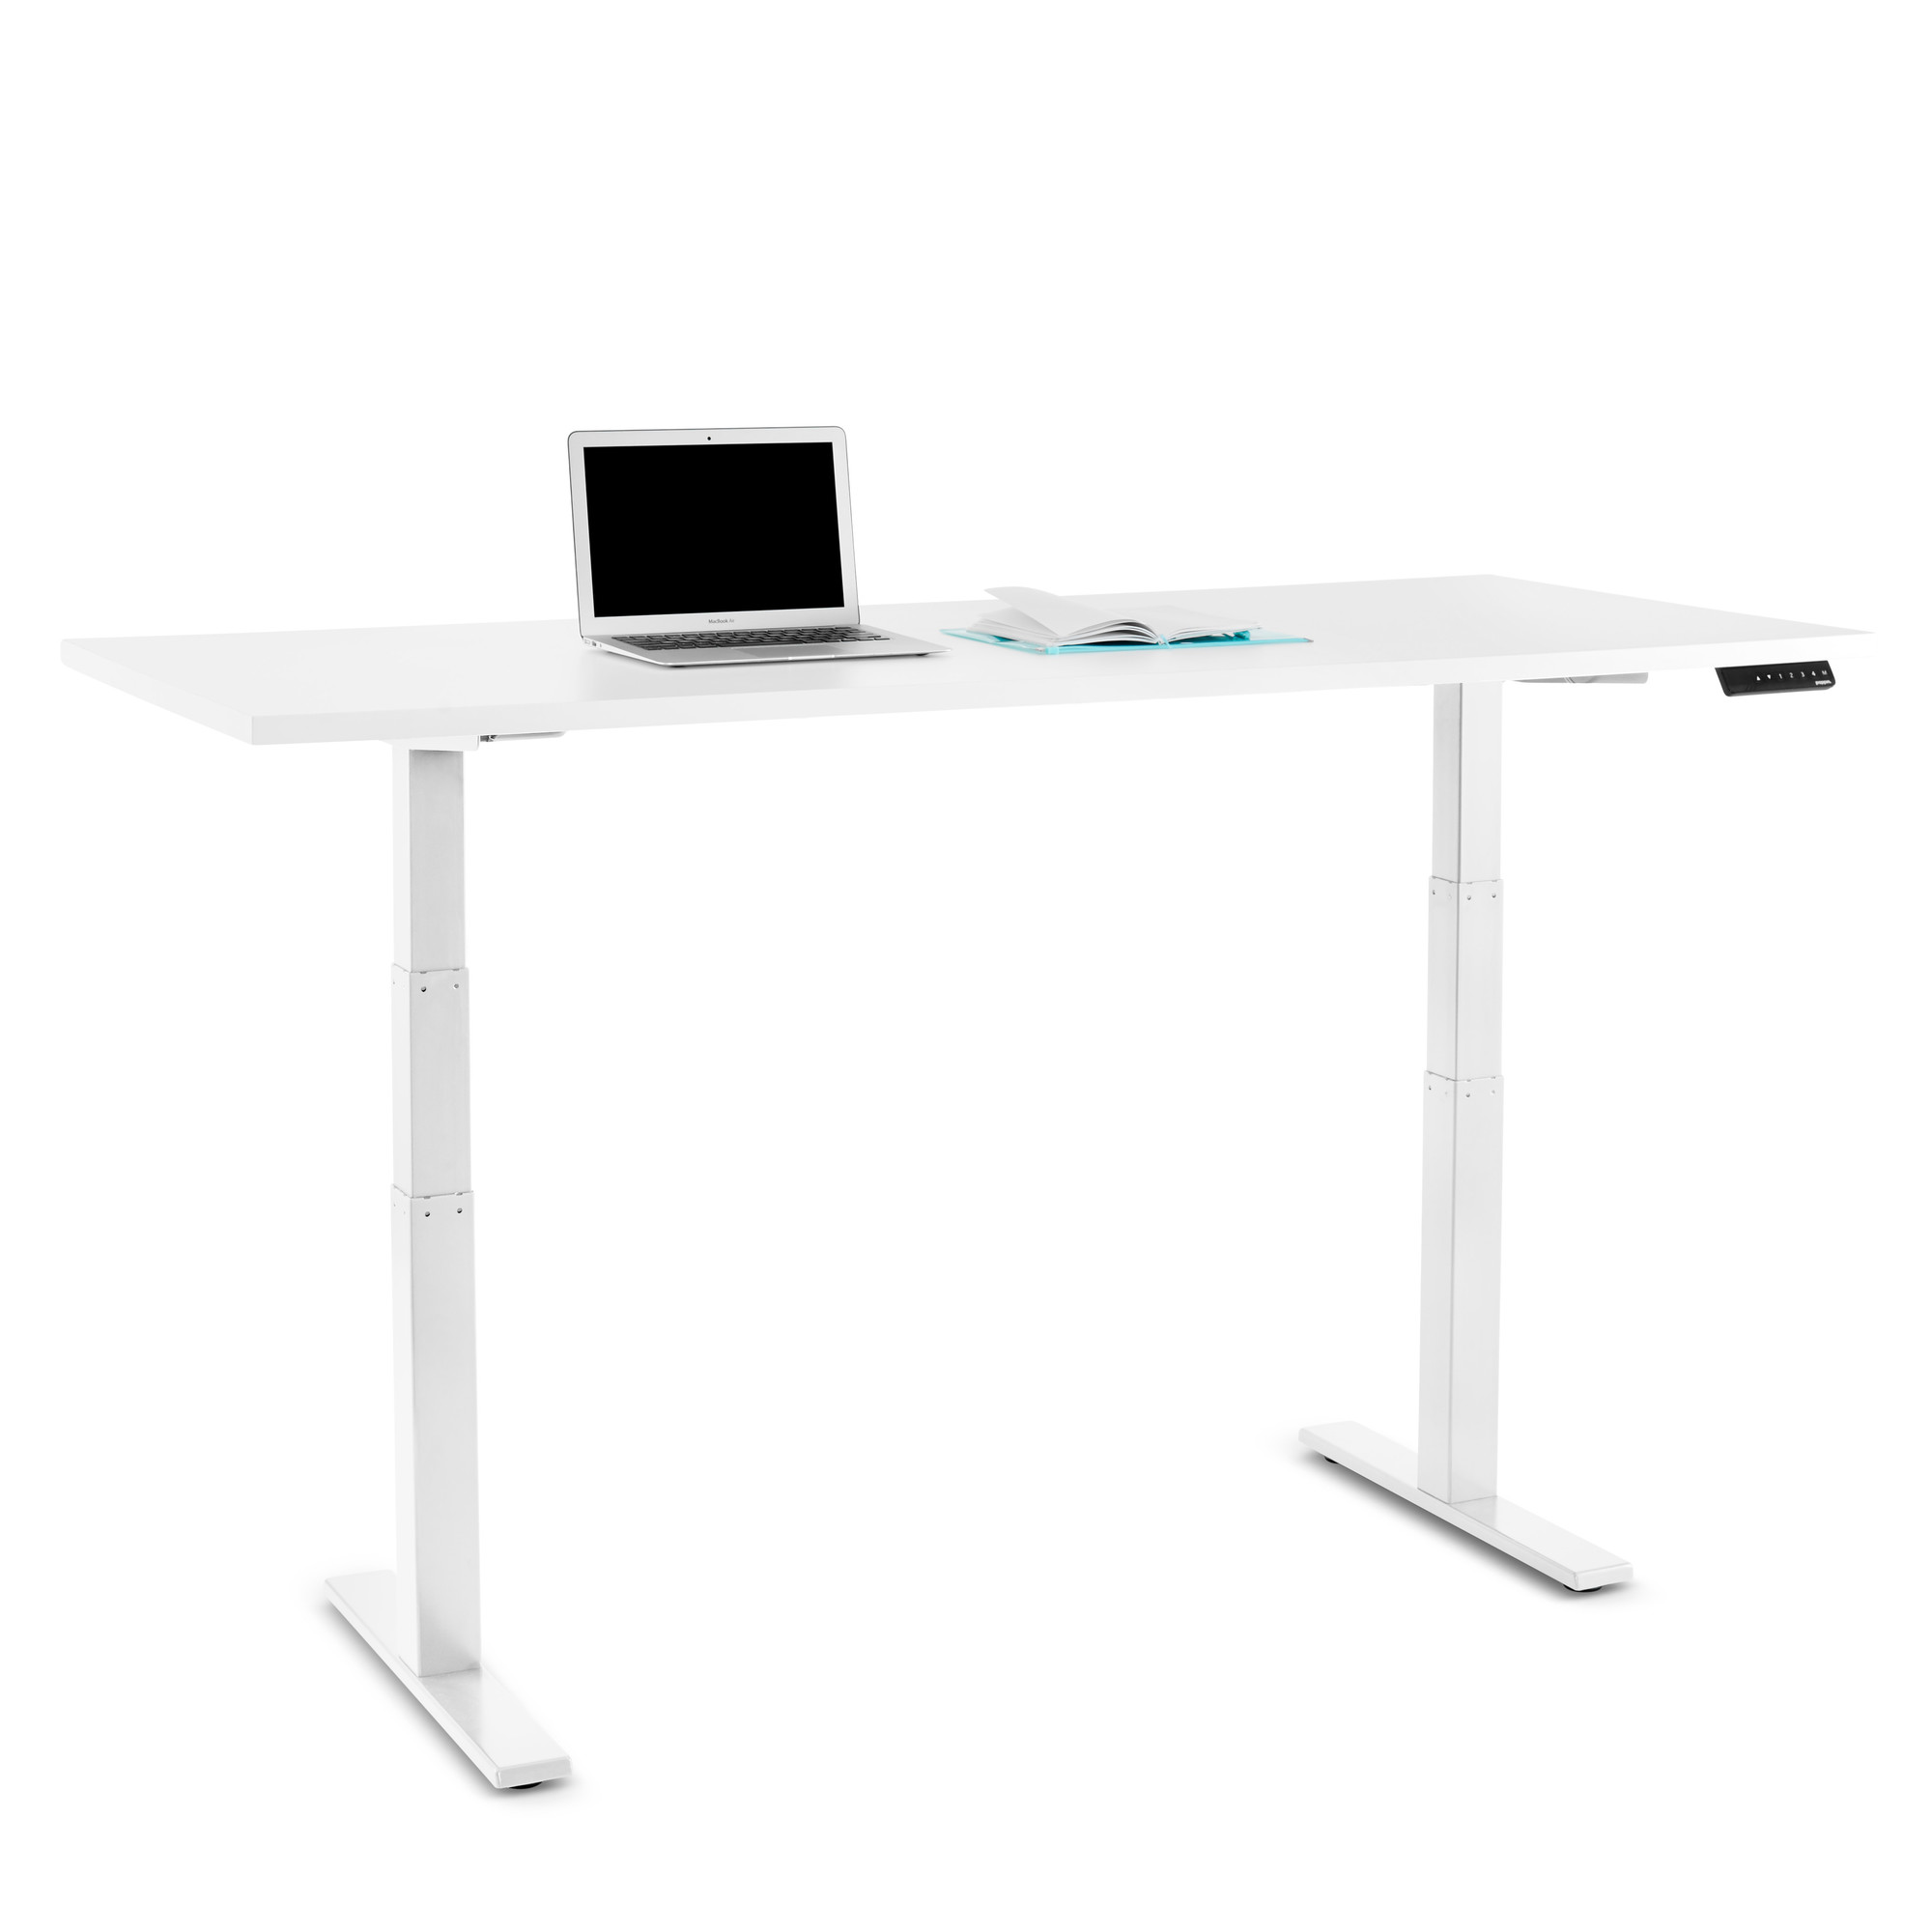 Series l adjustable height table white 72 x 30 white legs